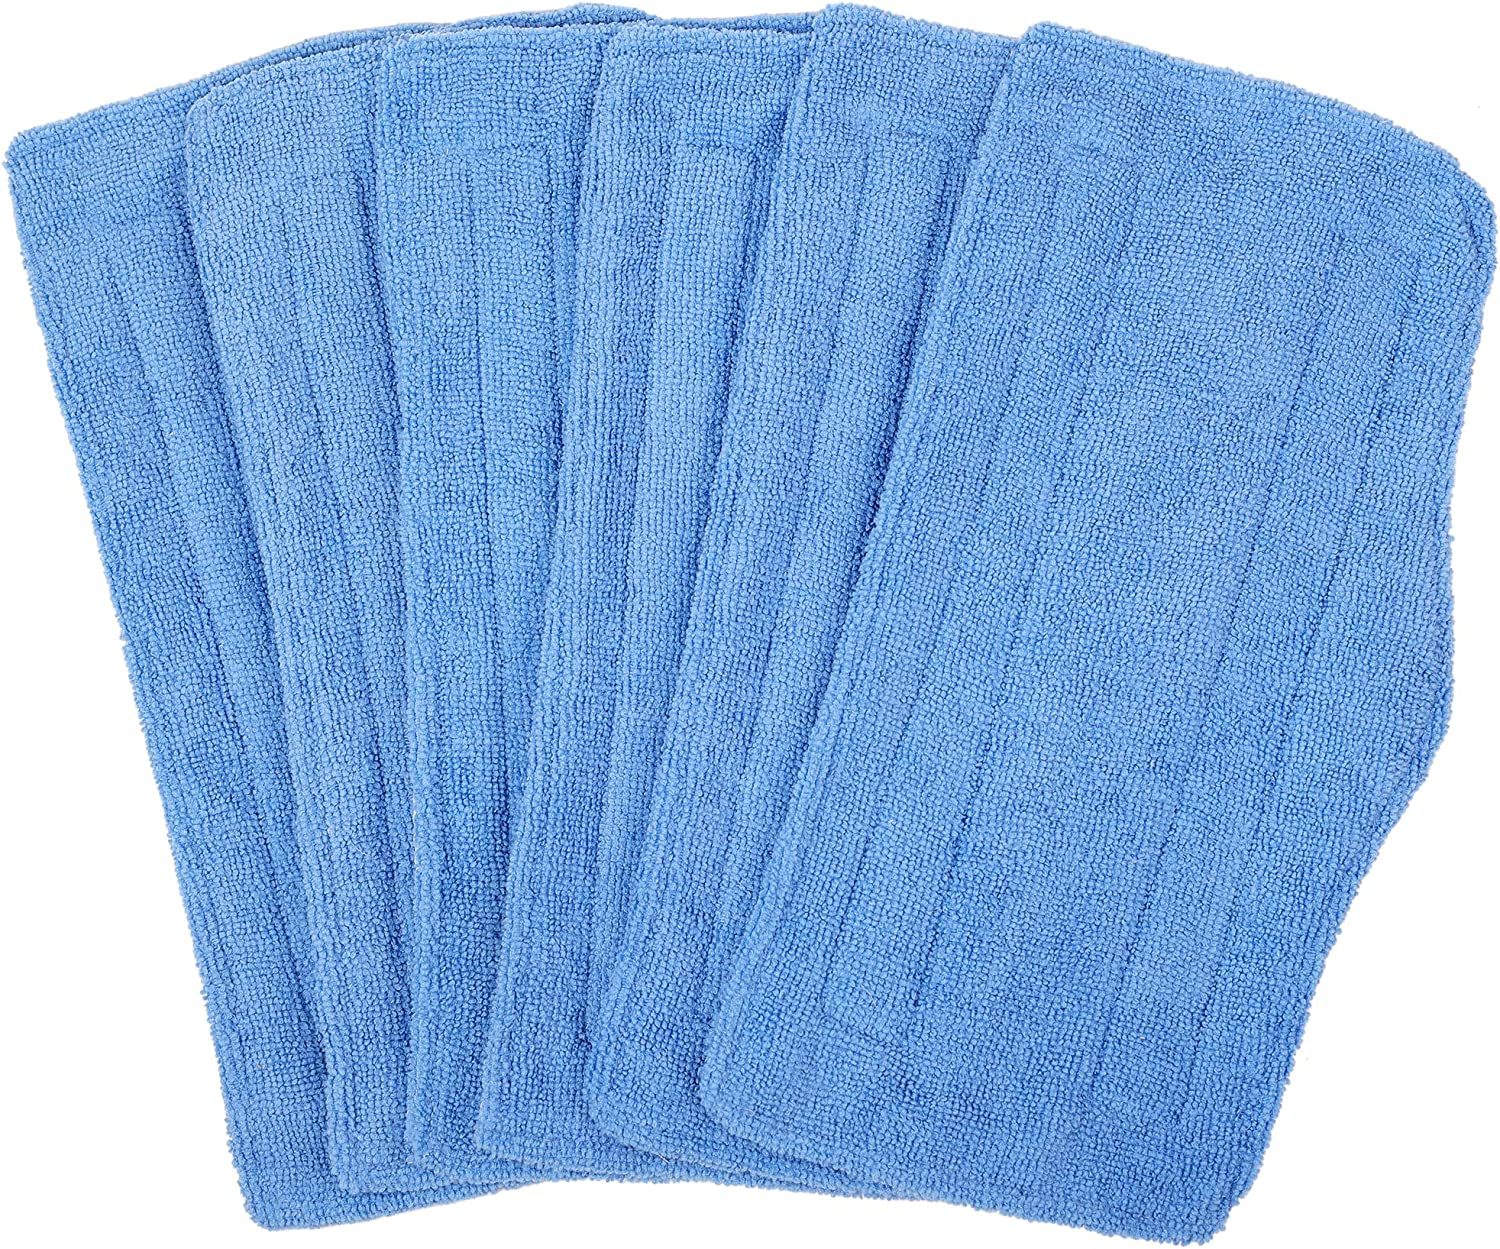 HomeDay Washable Mop Replacement Pads for Shark Vacuum Steam SK410, SK435CO, SK460, SK140, SK141, S3101, S3250, S3251 (Pack of 6)